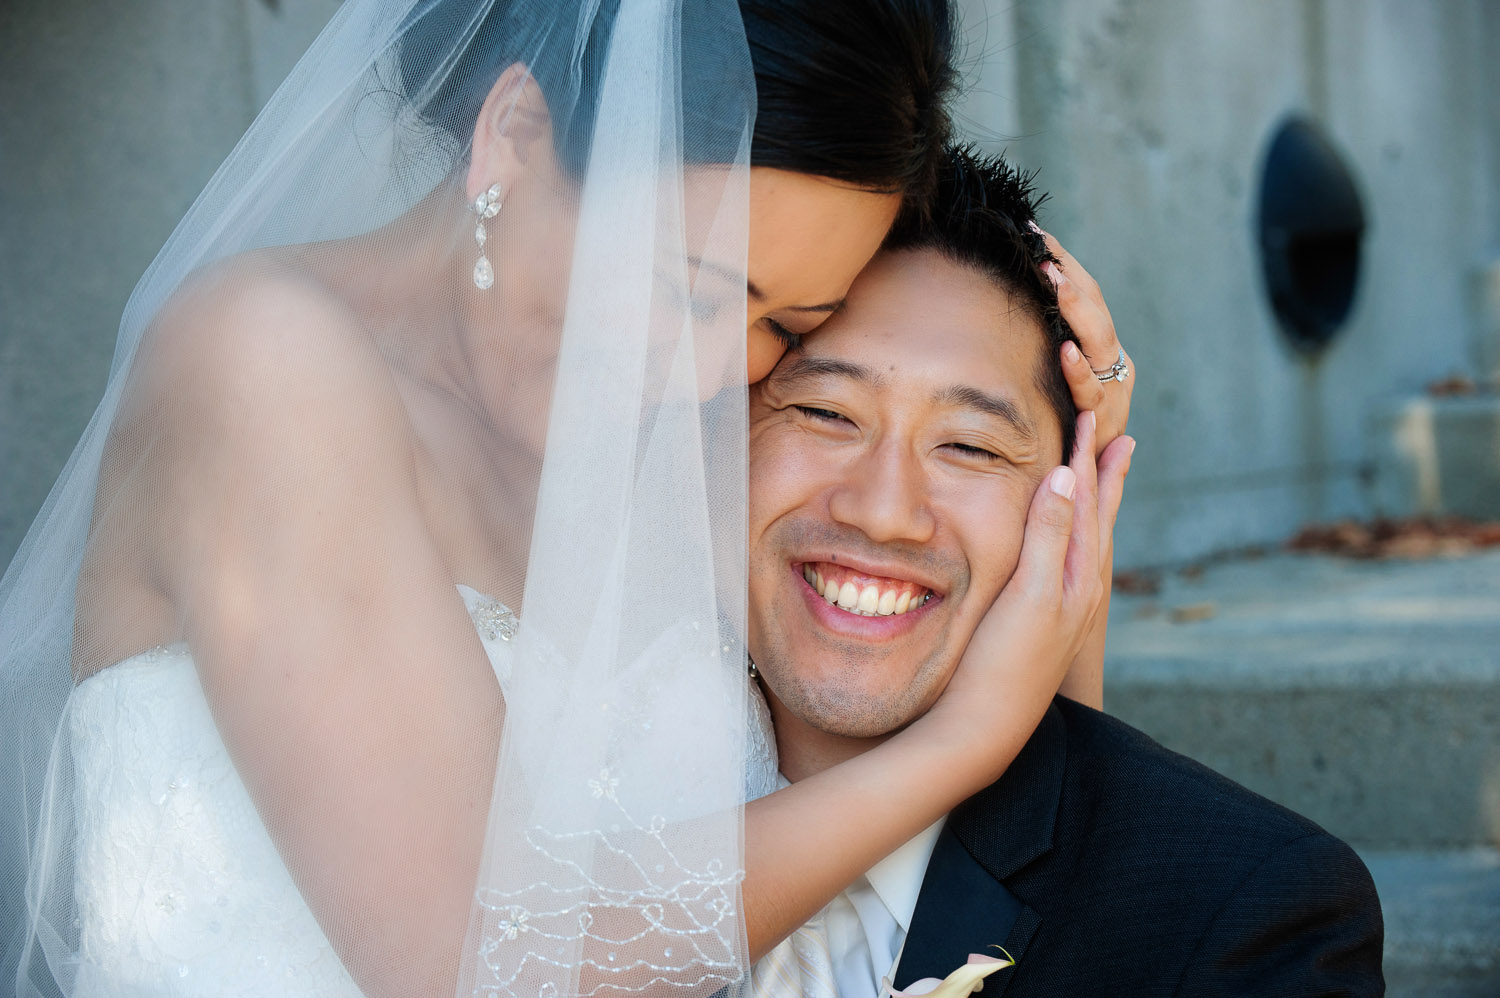 14-very-happy-groom.jpg